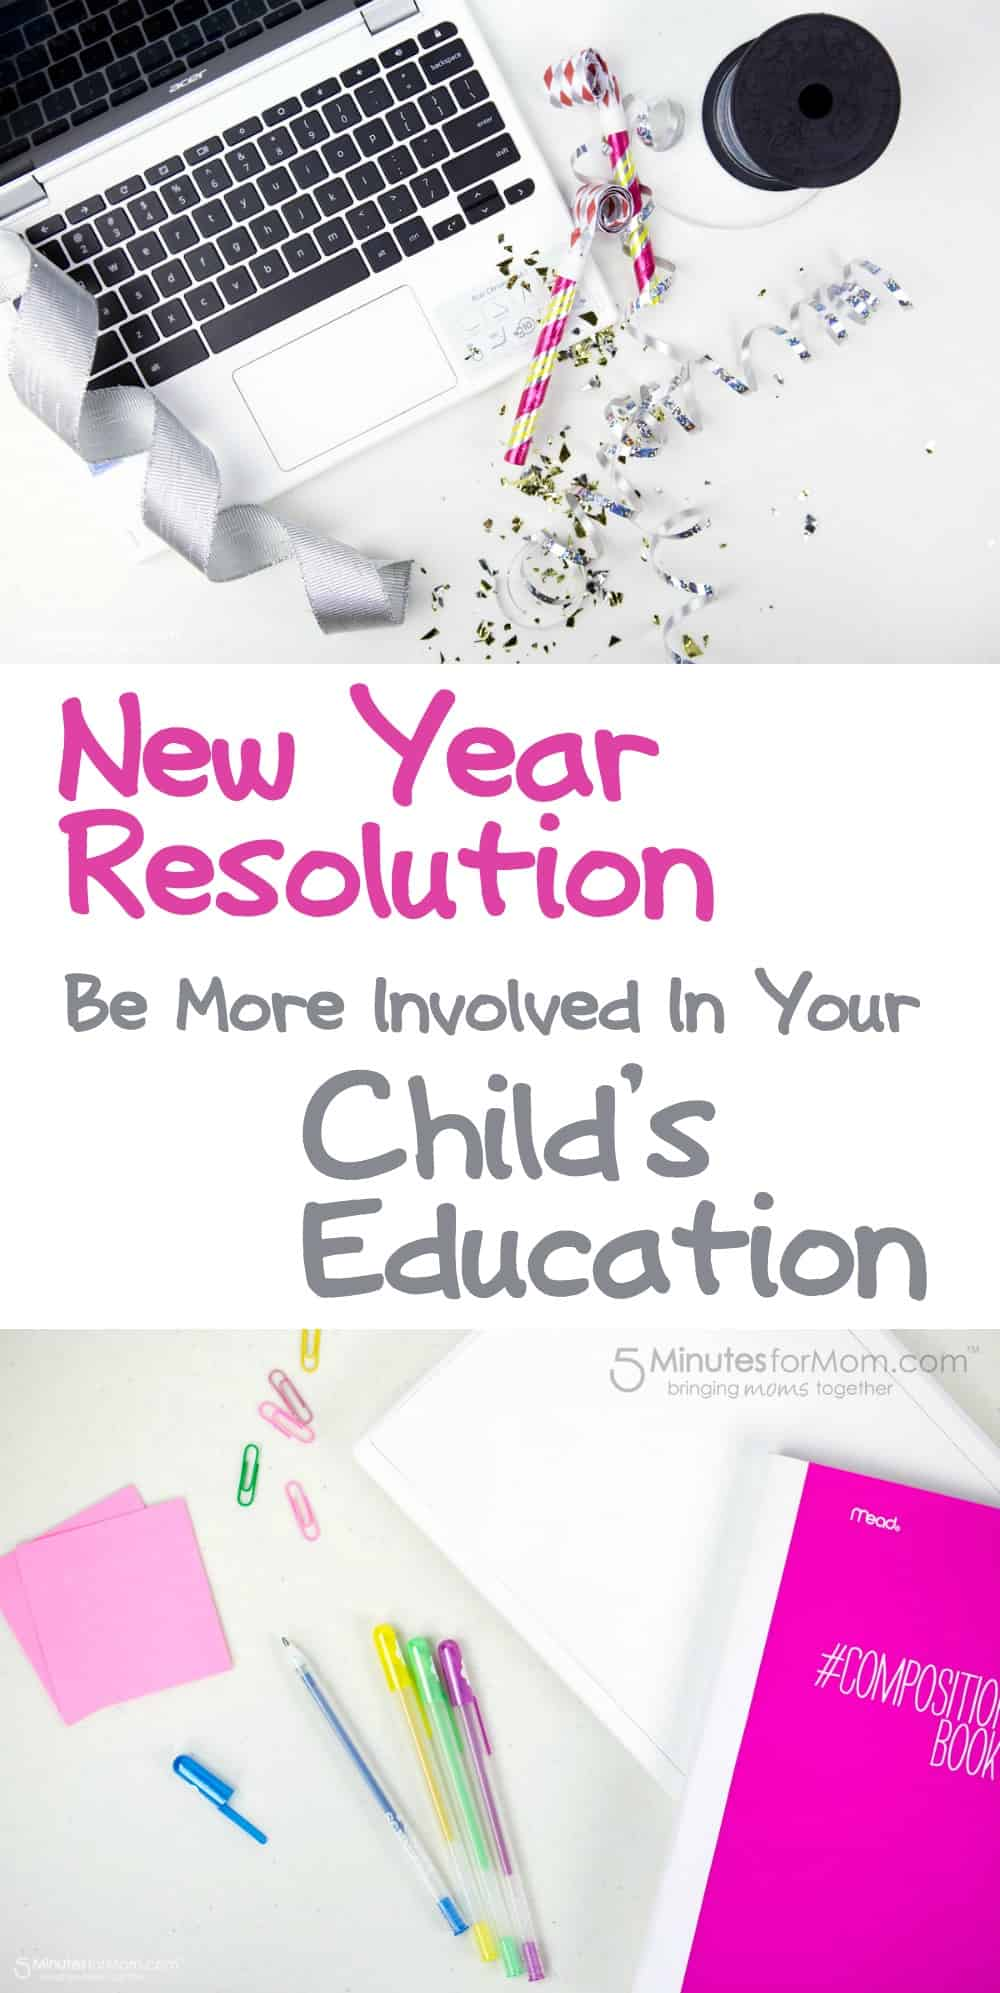 New Year Resolution - Be More Involved In Your Childs Education